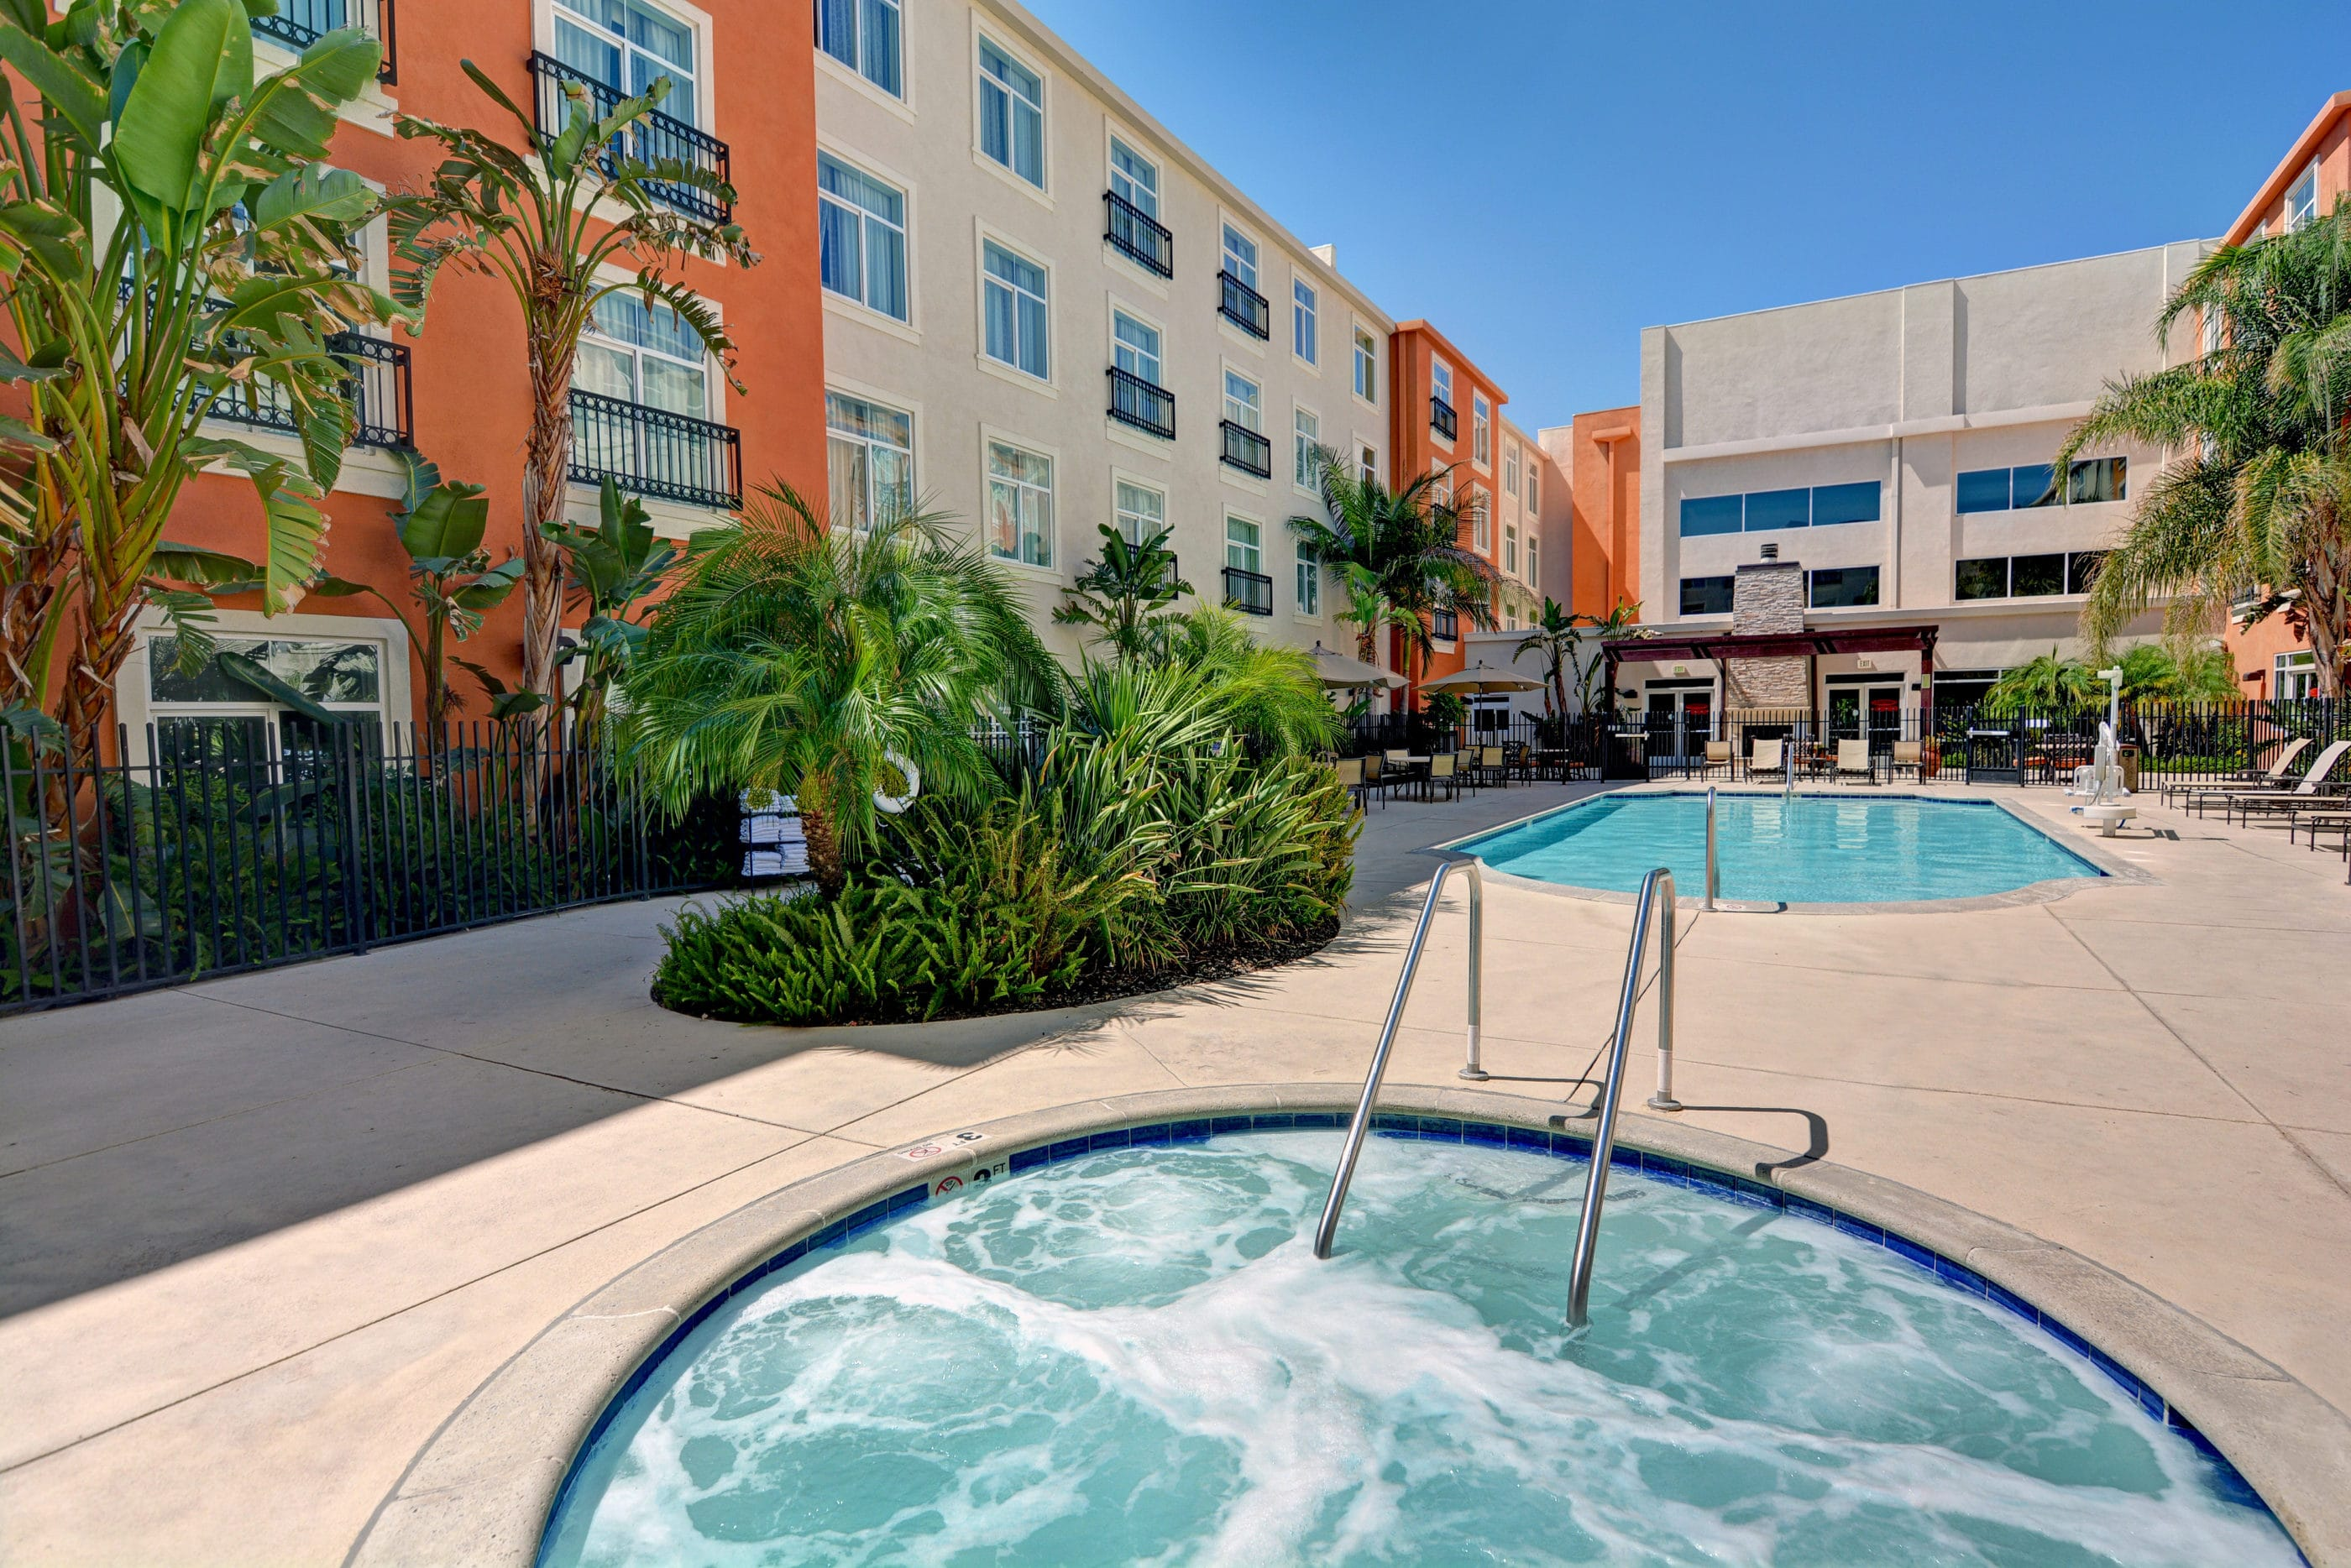 The Embassy Suites by Hilton Valencia pool and whirlpool on a sunny day.